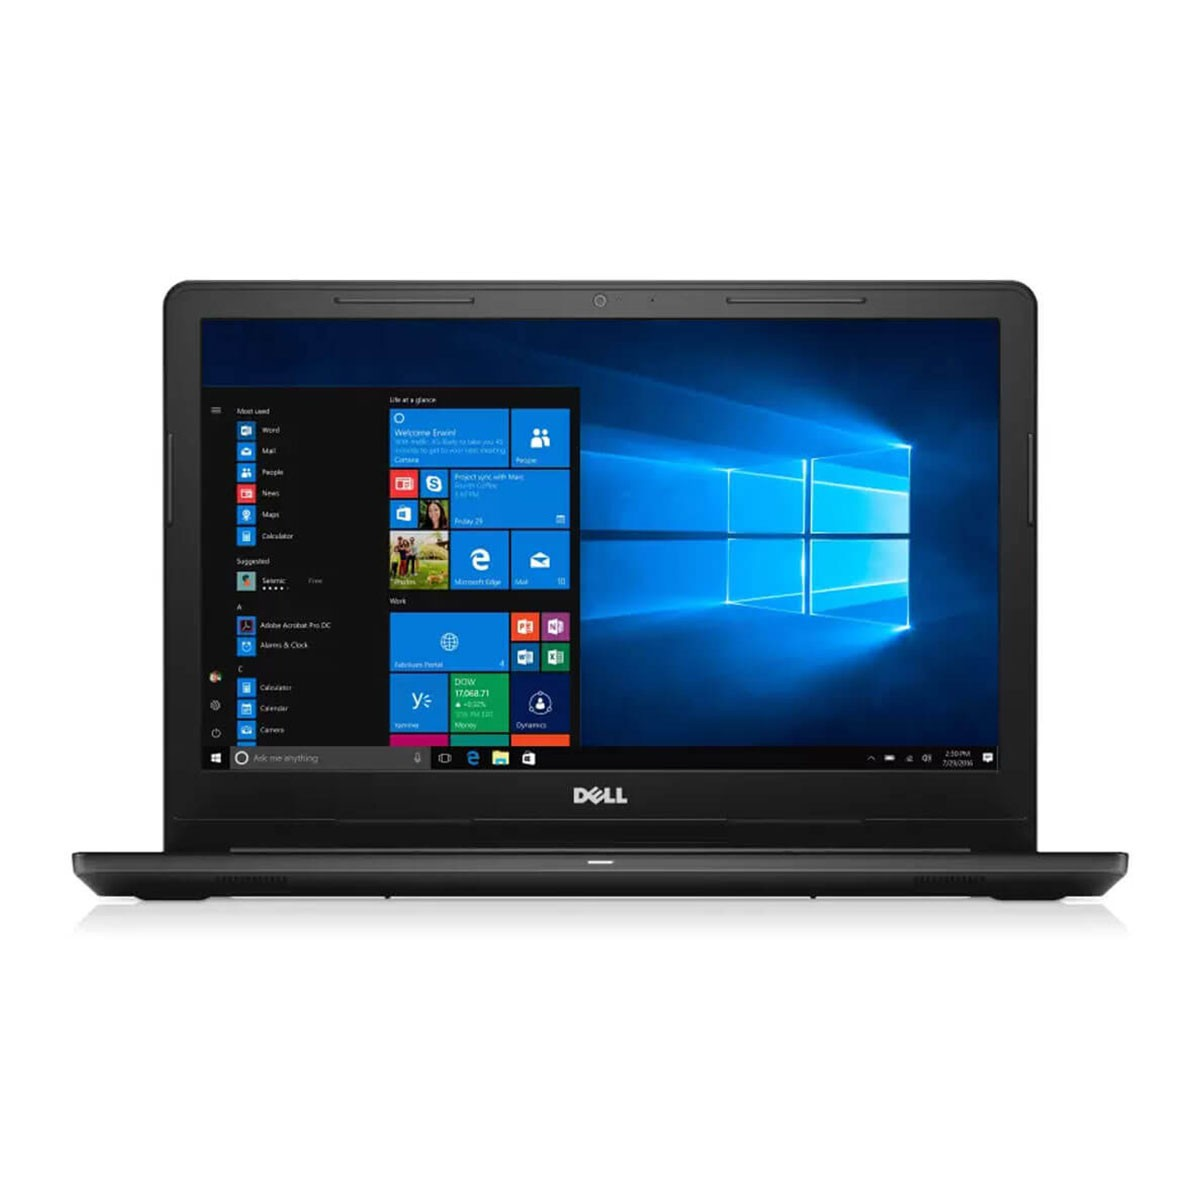 Dell Inspiron 15 5568 (6th Gen Ci5/8GB/1TB/Integrated Graphics/Win 10/15.6-Inch/Touch) Z564303SIN9-1